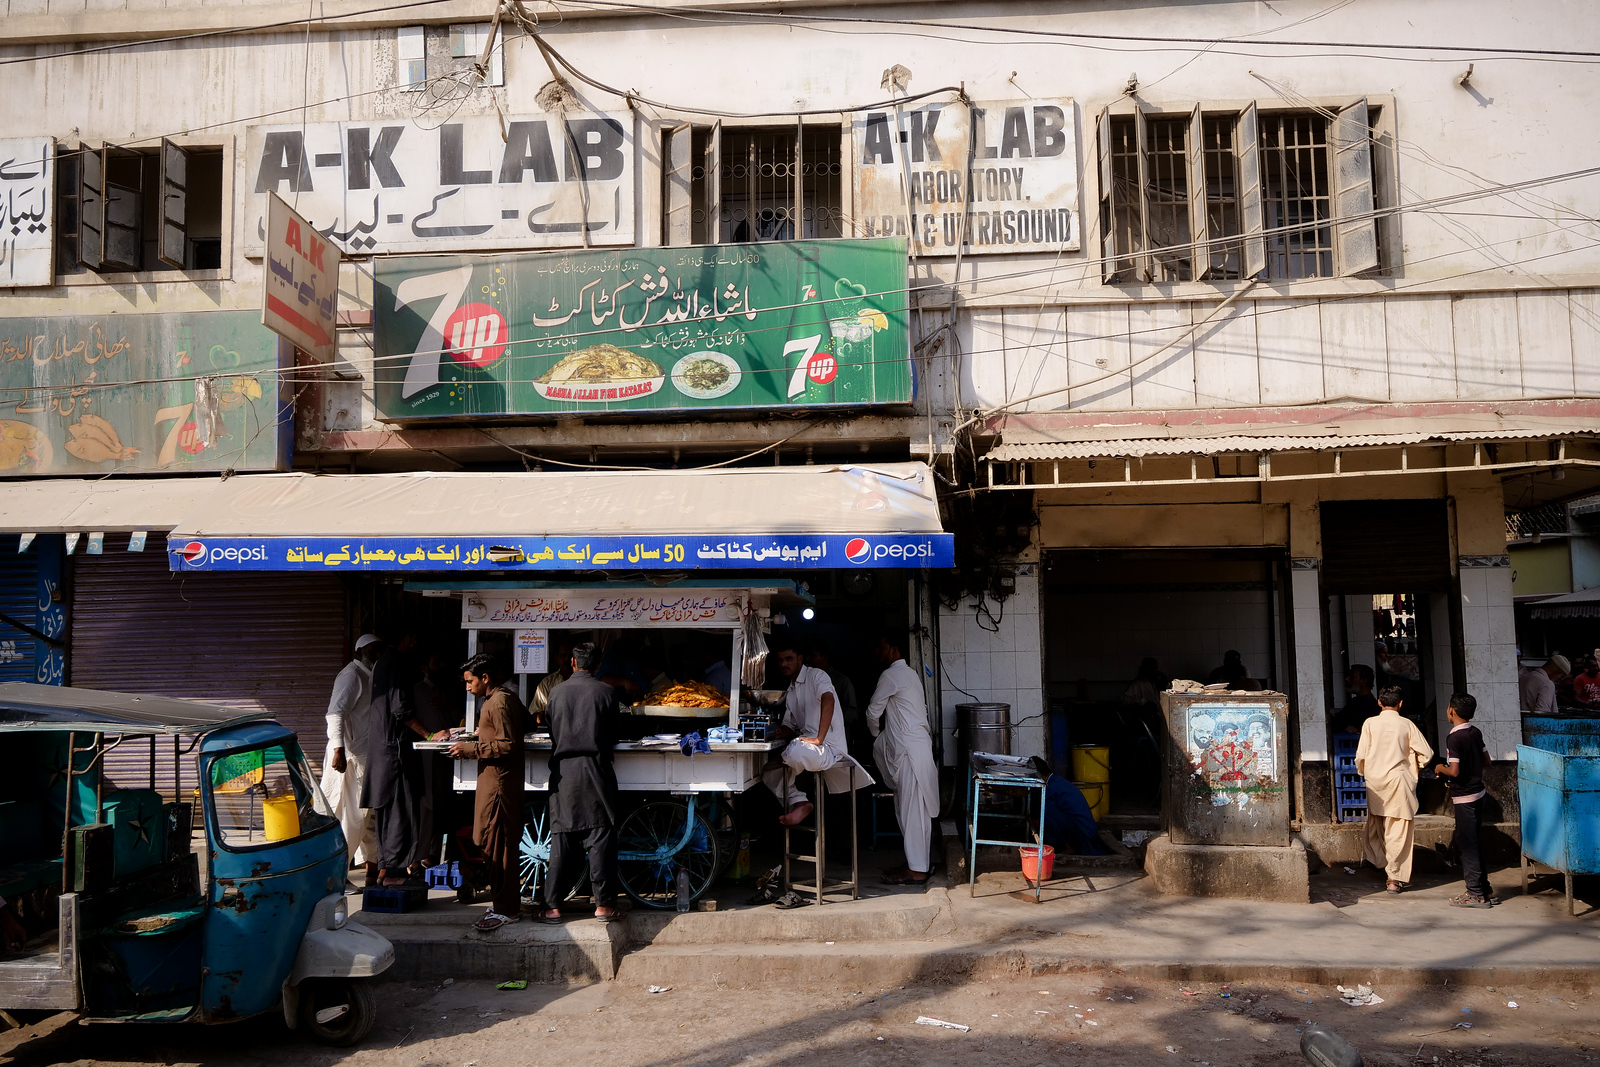 The original fish cart is still parked (and used) in front of Masha Allah restaurant